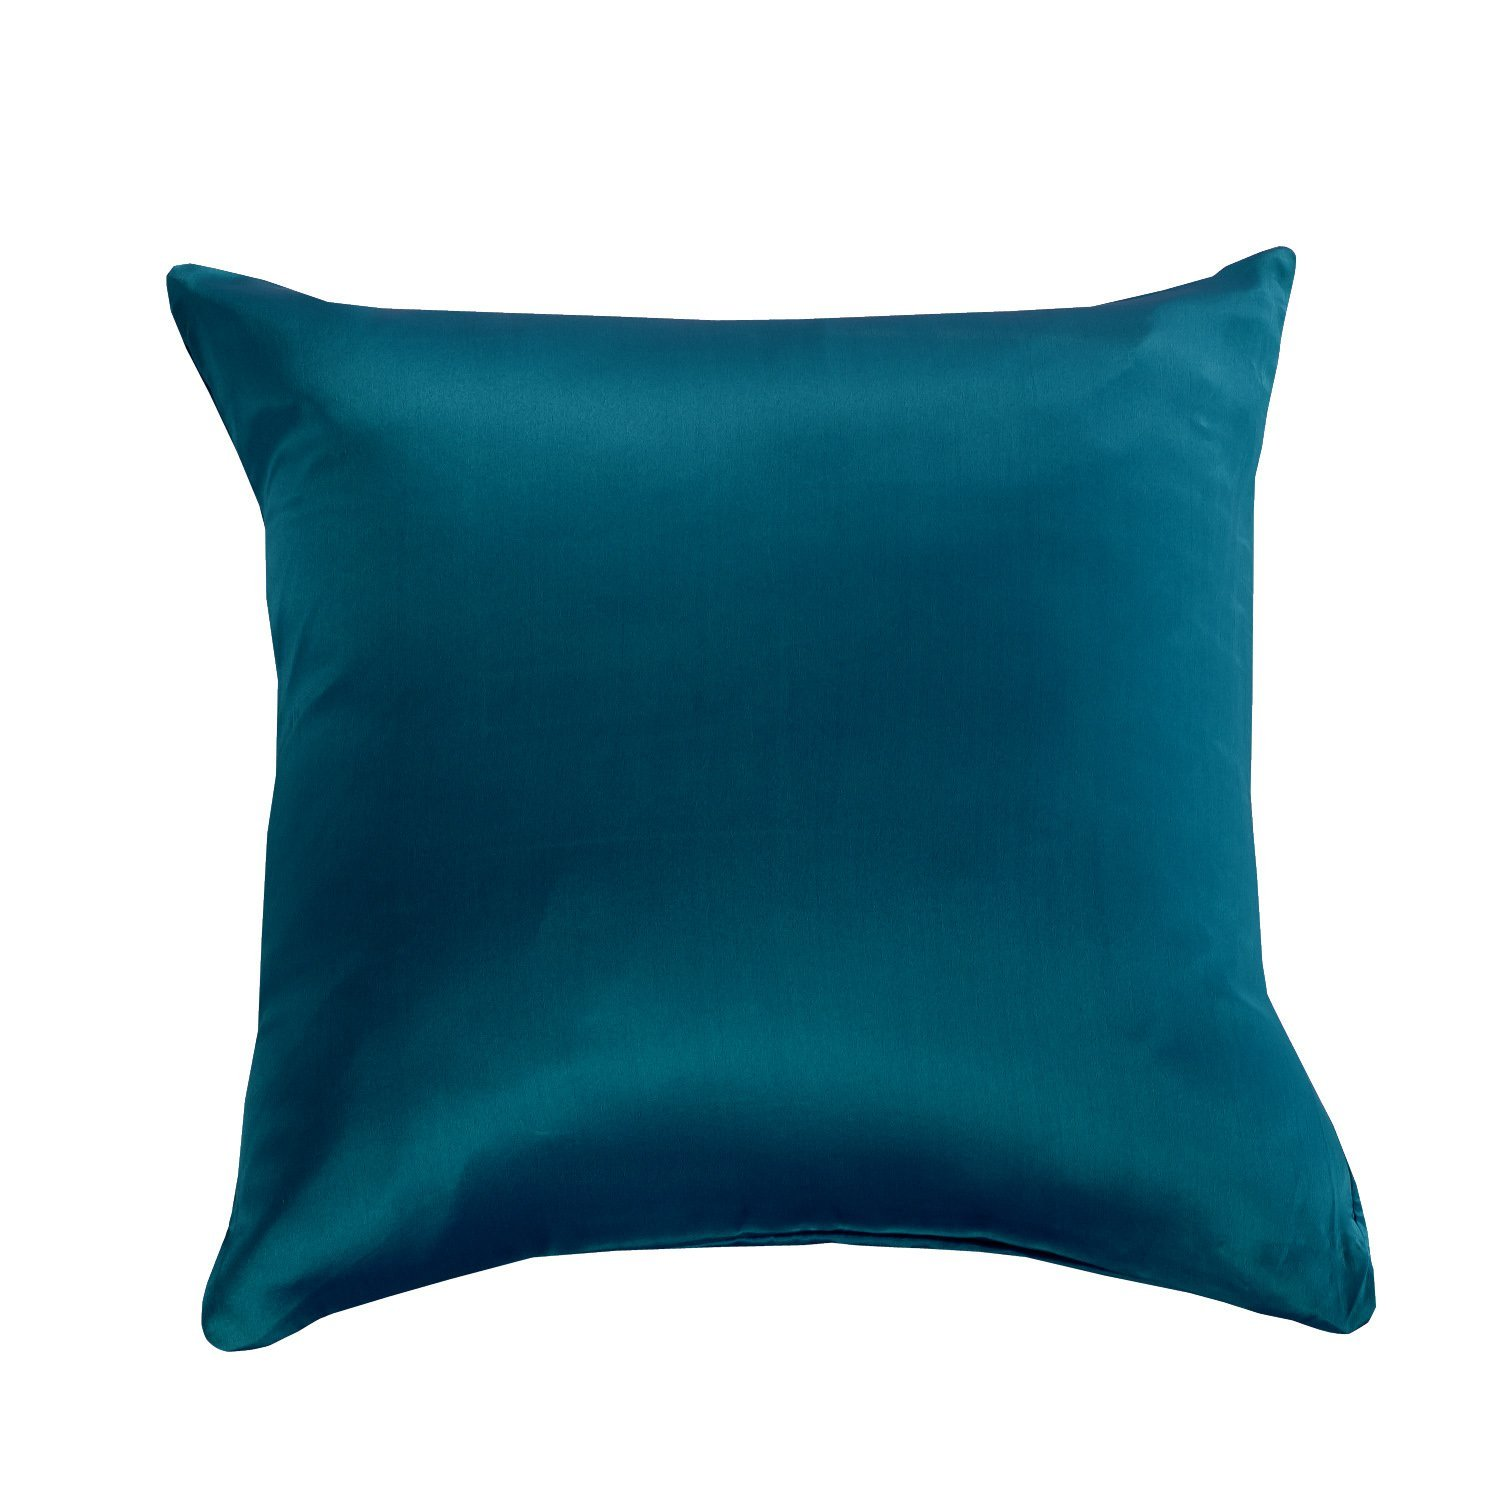 """Orose Silk Square Decorative Pillow Case Cushion Cover for Couch, Sofa, Bed, Throw Pillowcase 18""""x18"""" (18""""18"""", Peacock)"""